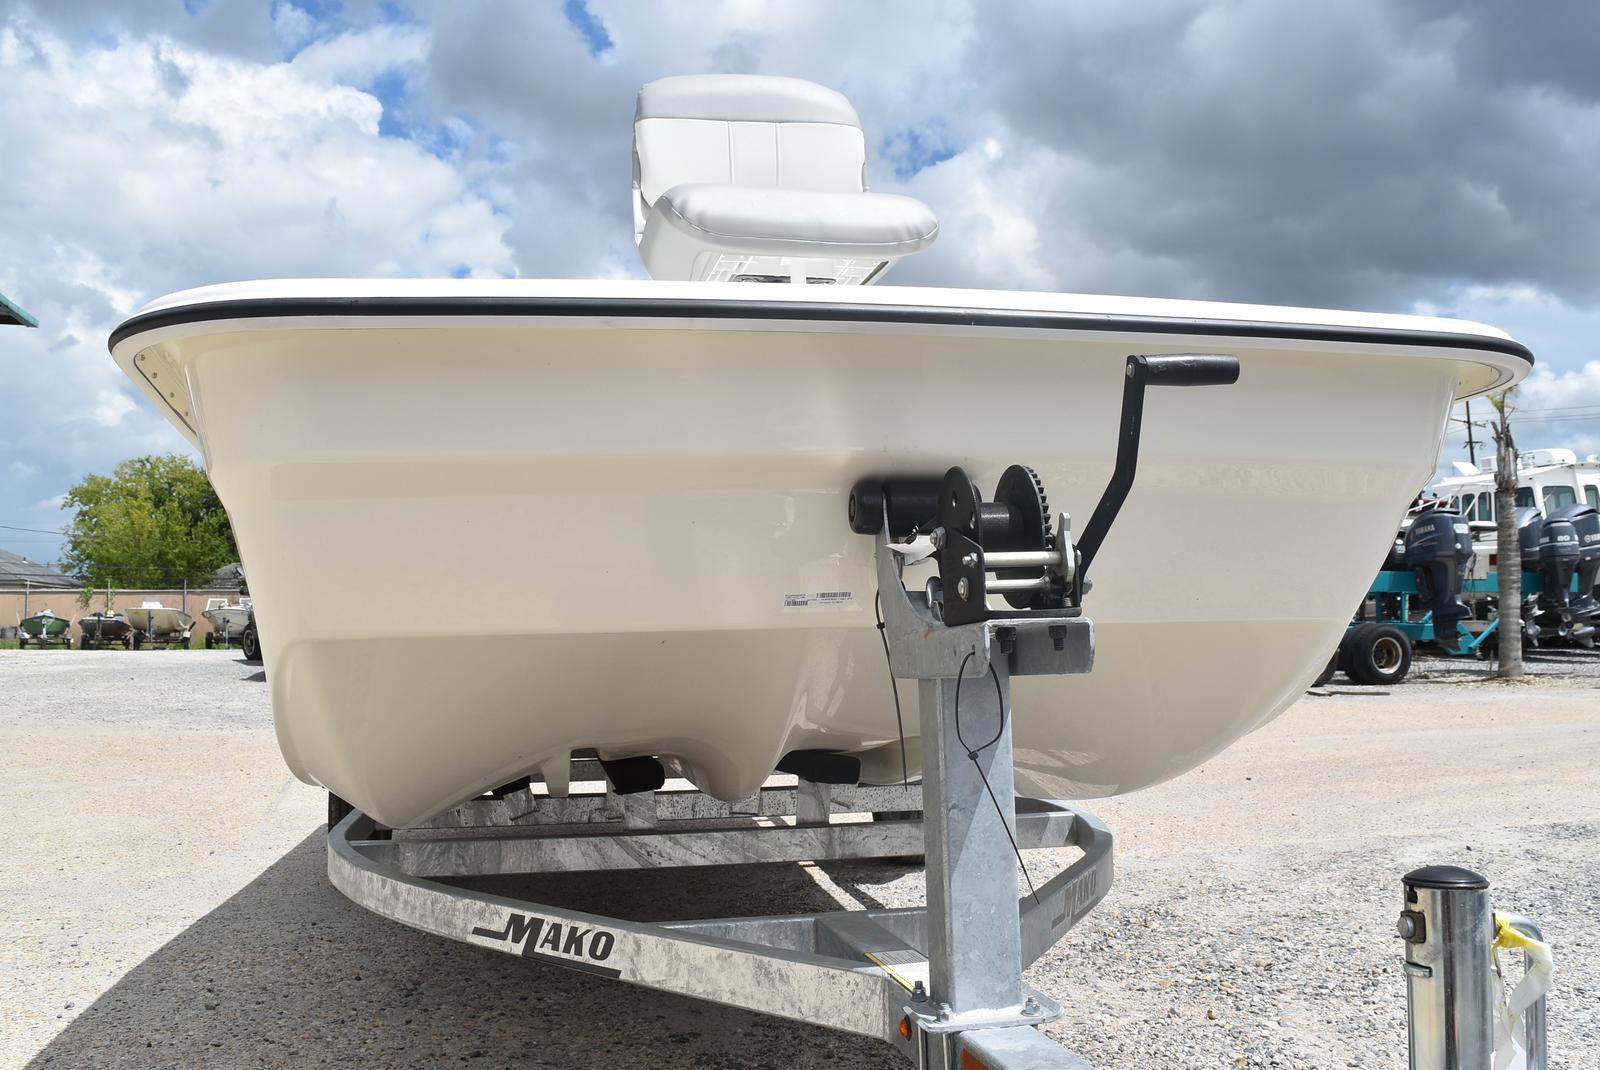 2020 Mako boat for sale, model of the boat is Pro Skiff 17, 75 ELPT & Image # 316 of 702